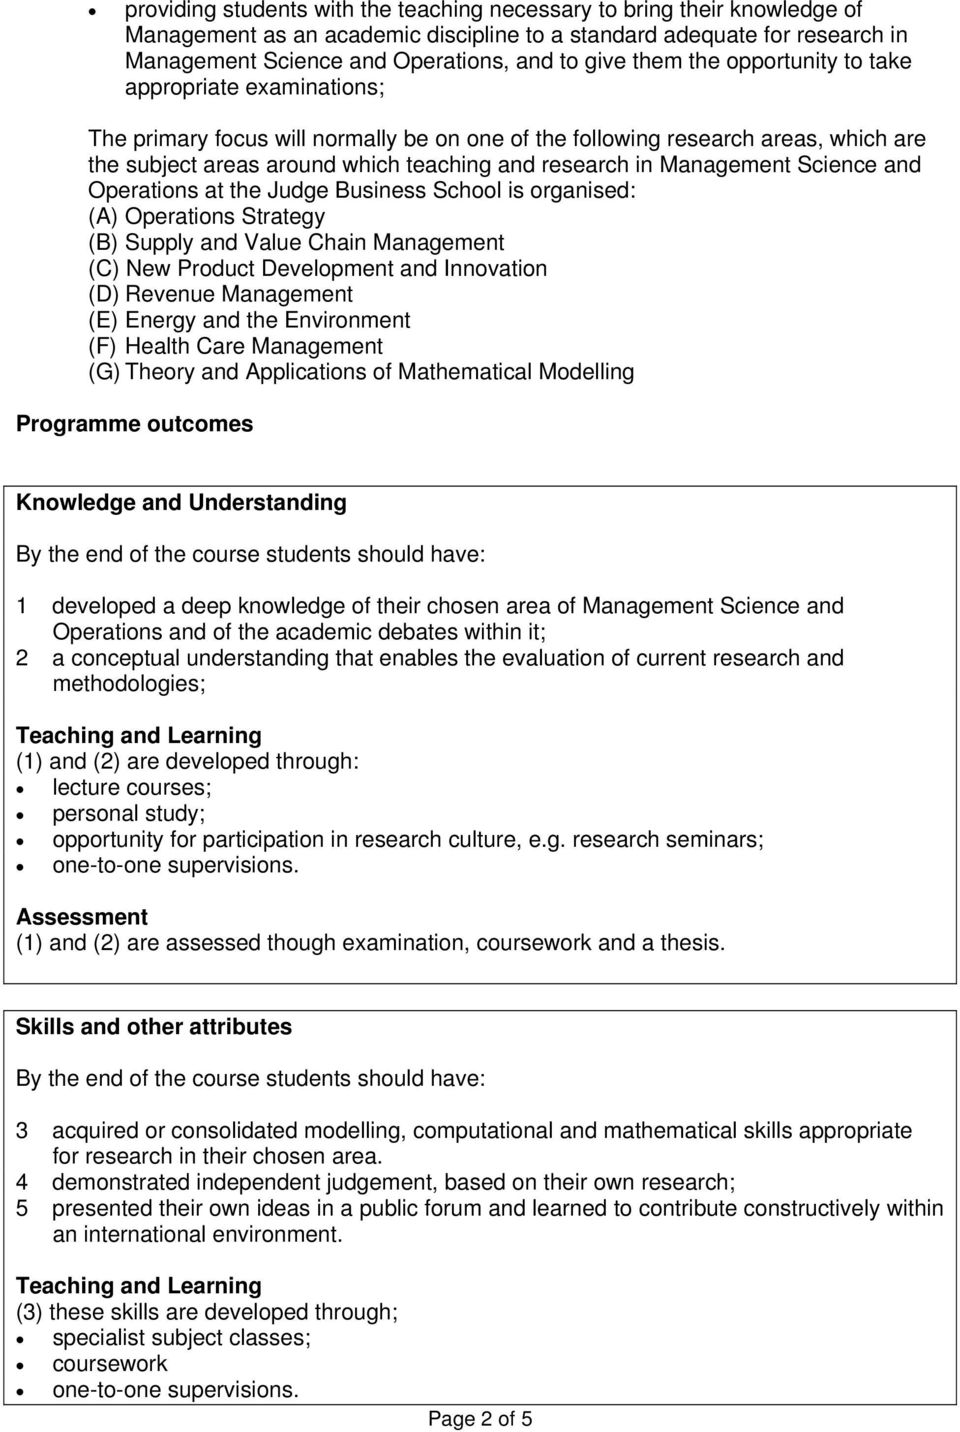 Management Science and Operations at the Judge Business School is organised: (A) Operations Strategy (B) Supply and Value Chain Management (C) New Product Development and Innovation (D) Revenue